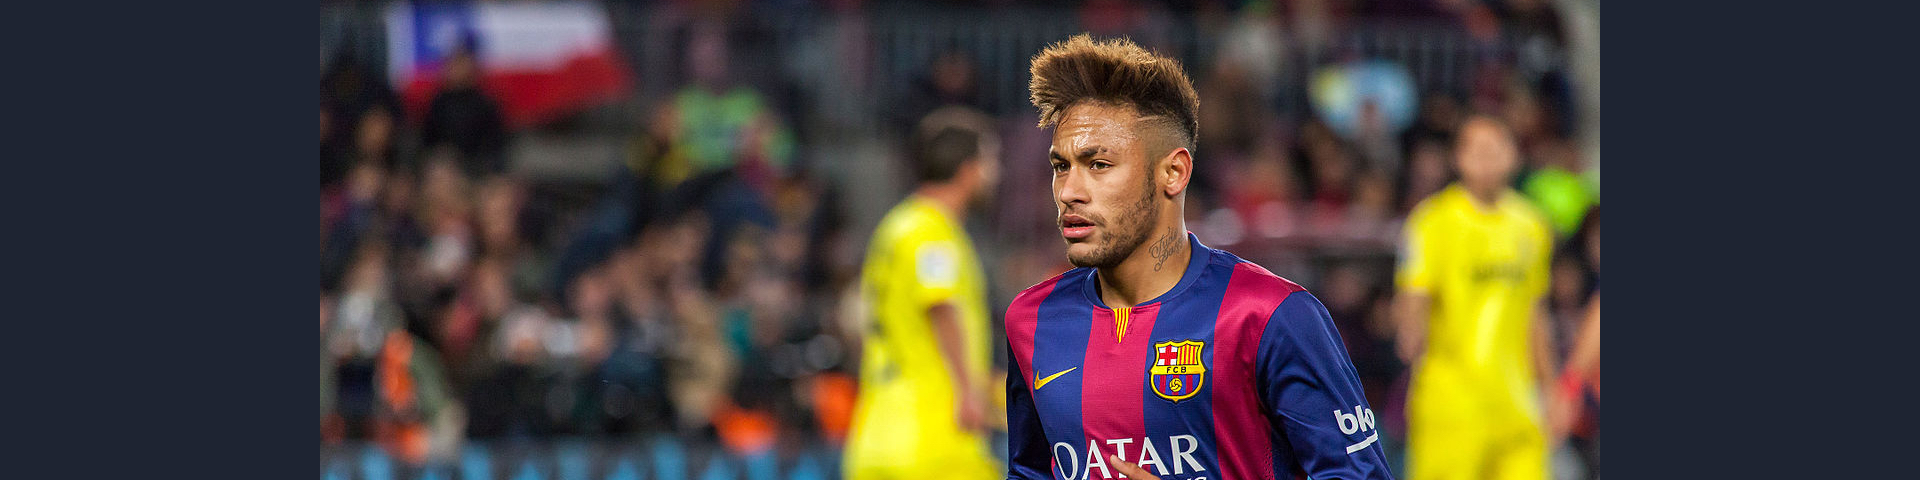 Has football officially gone mad? Or is this just the reality of the modern game? – The case of Neymar Jr